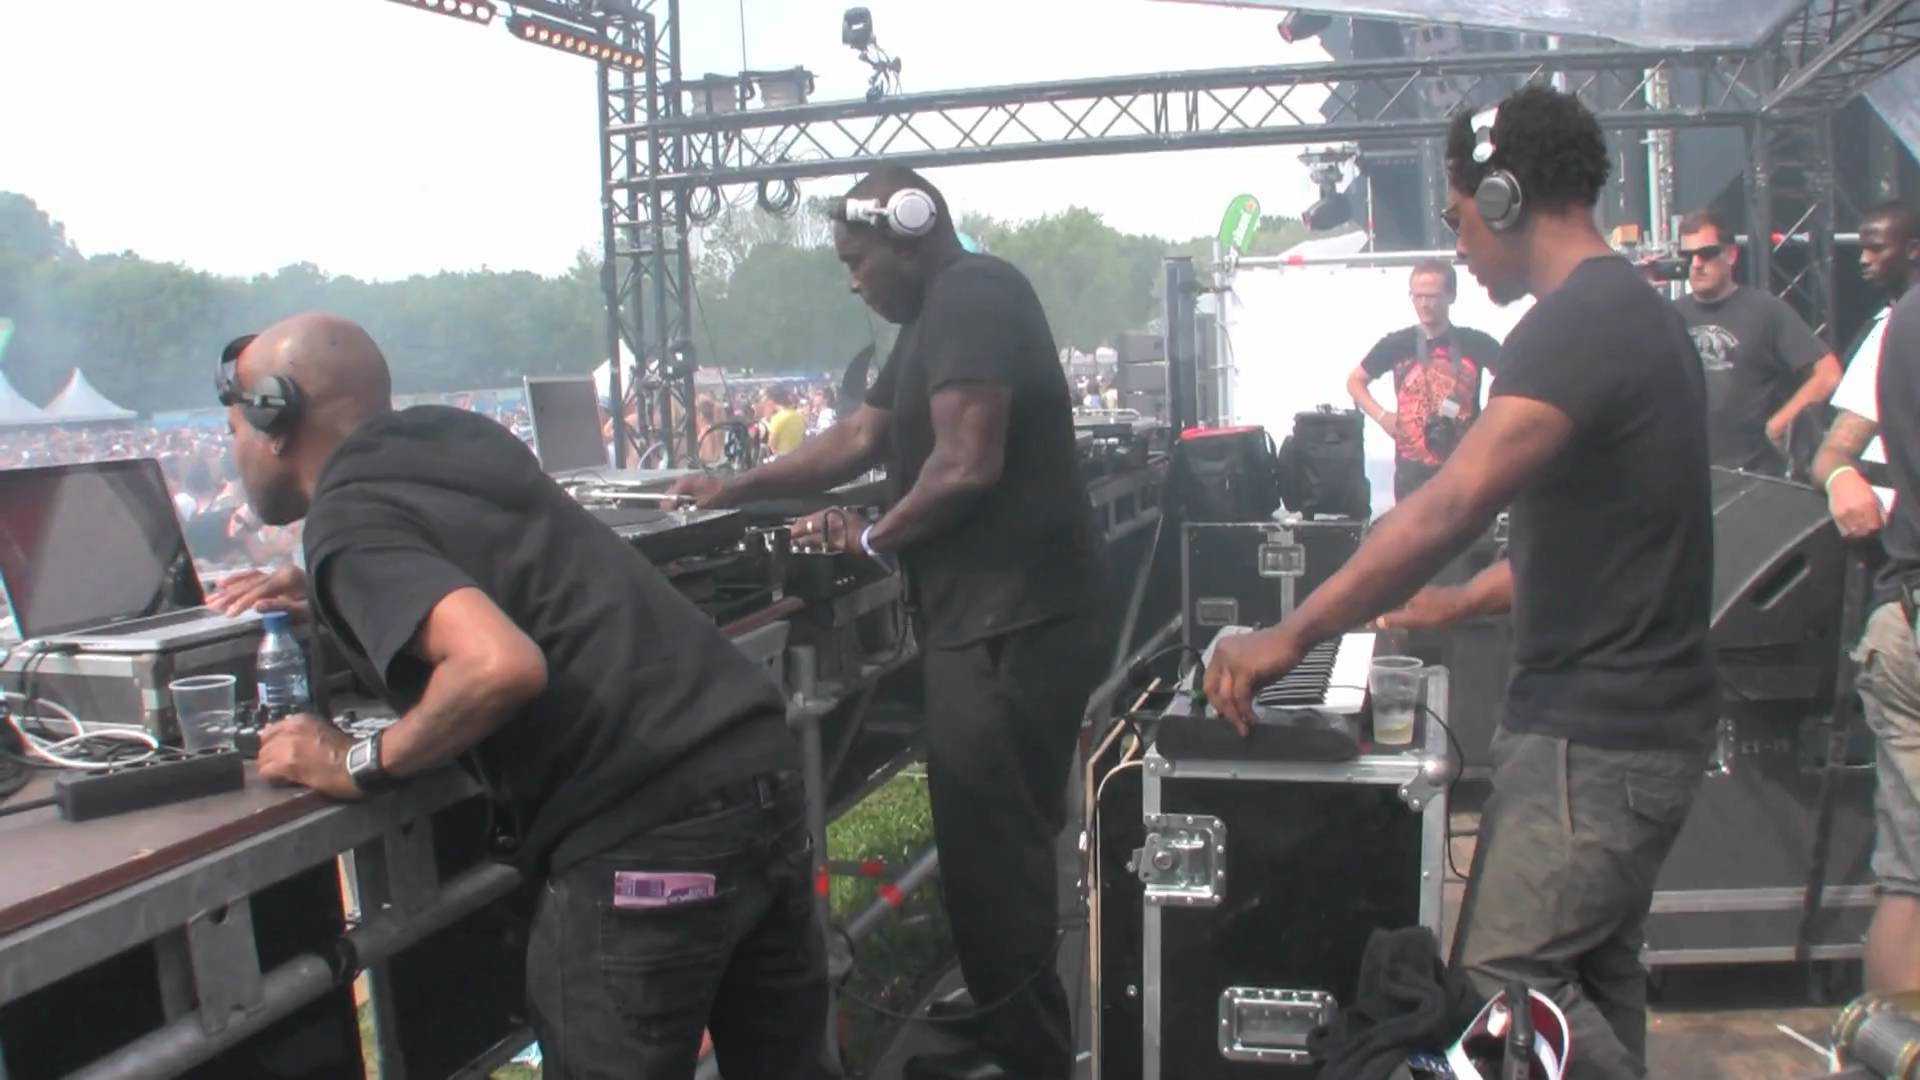 Belleville Three in action at Awakenings 2010, Amsterdam